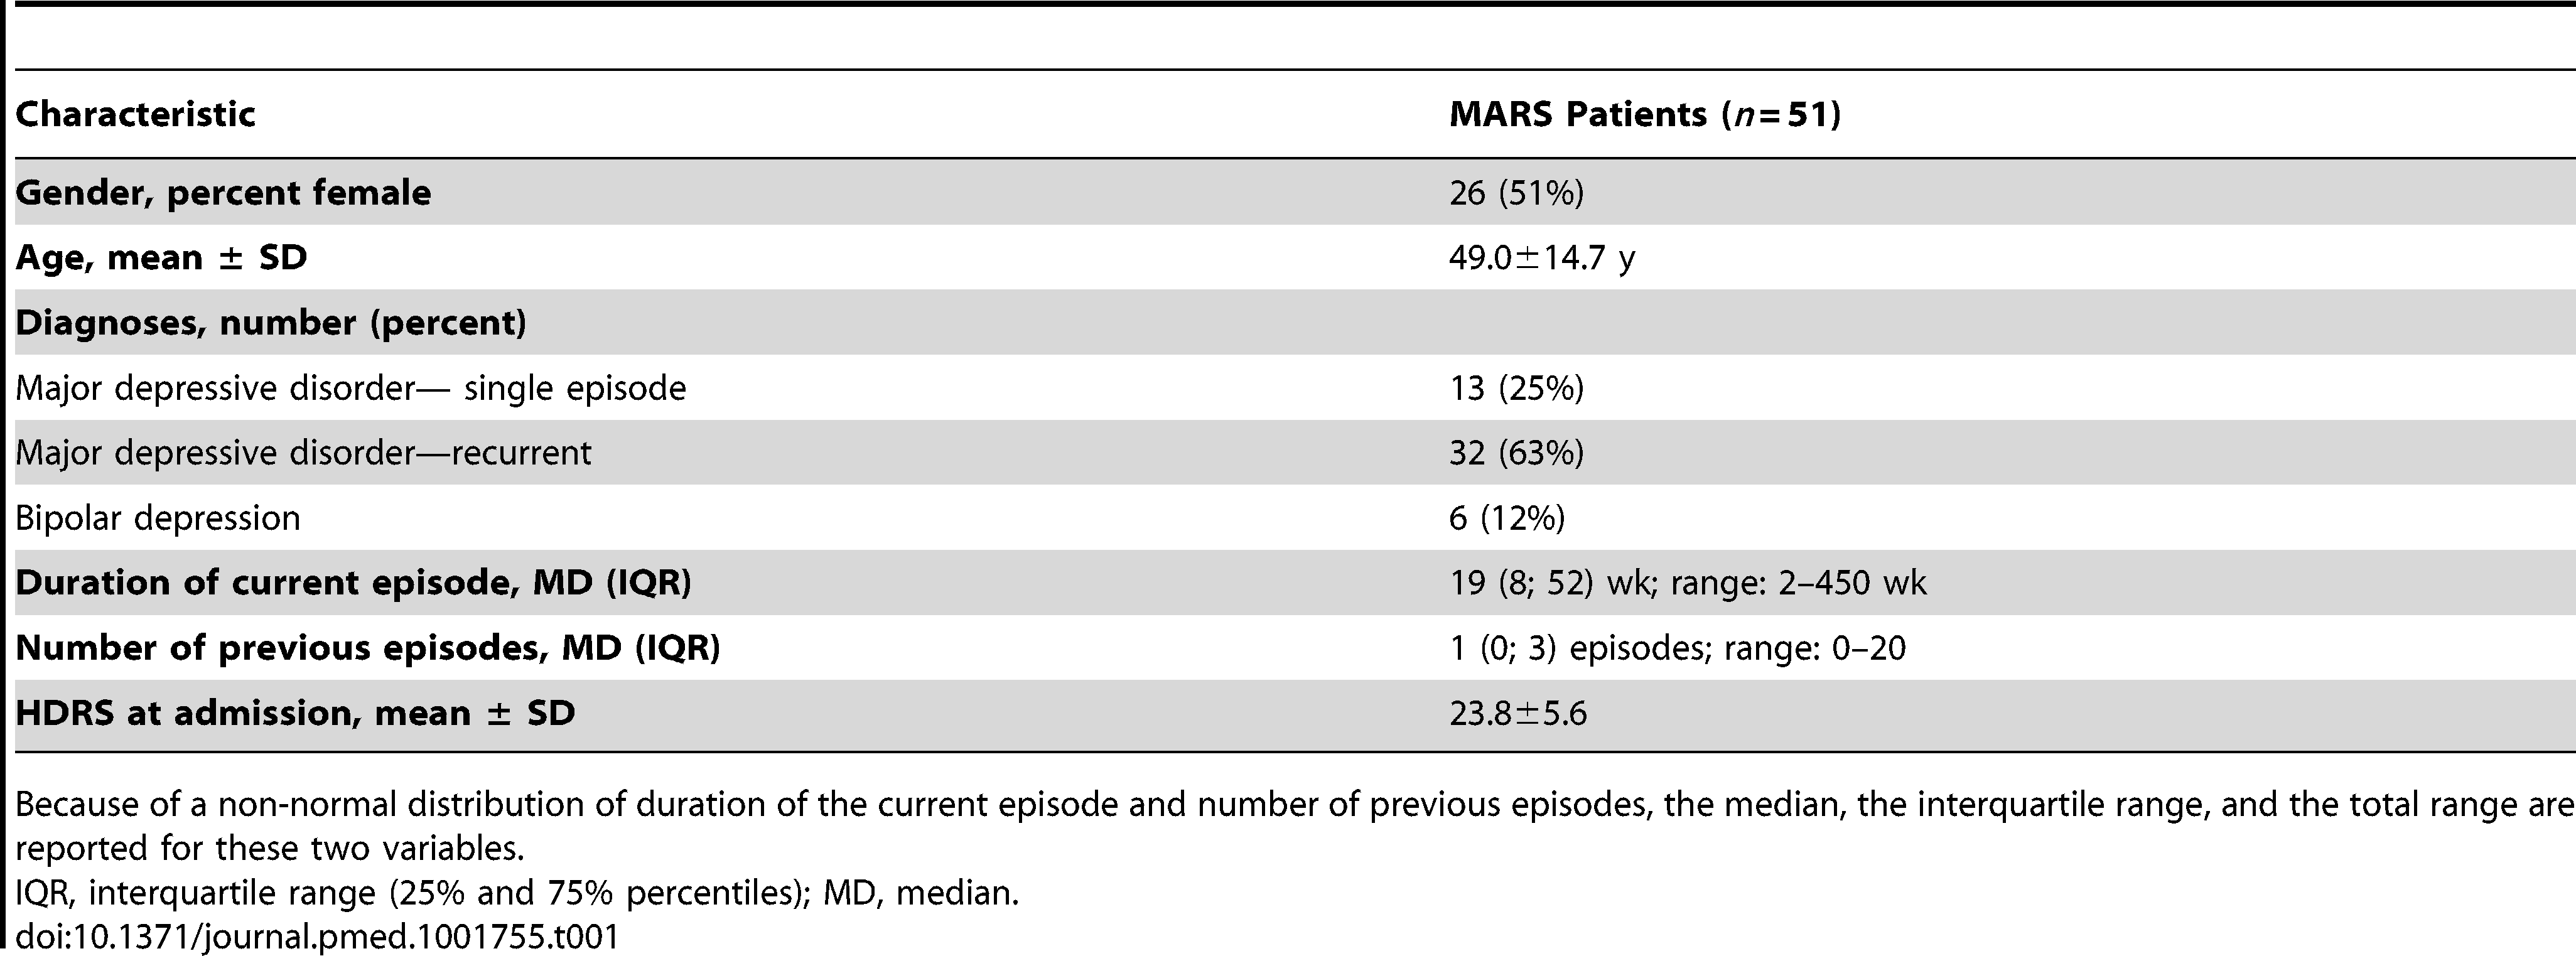 Demographic and clinical characteristics of the MARS patient sample.